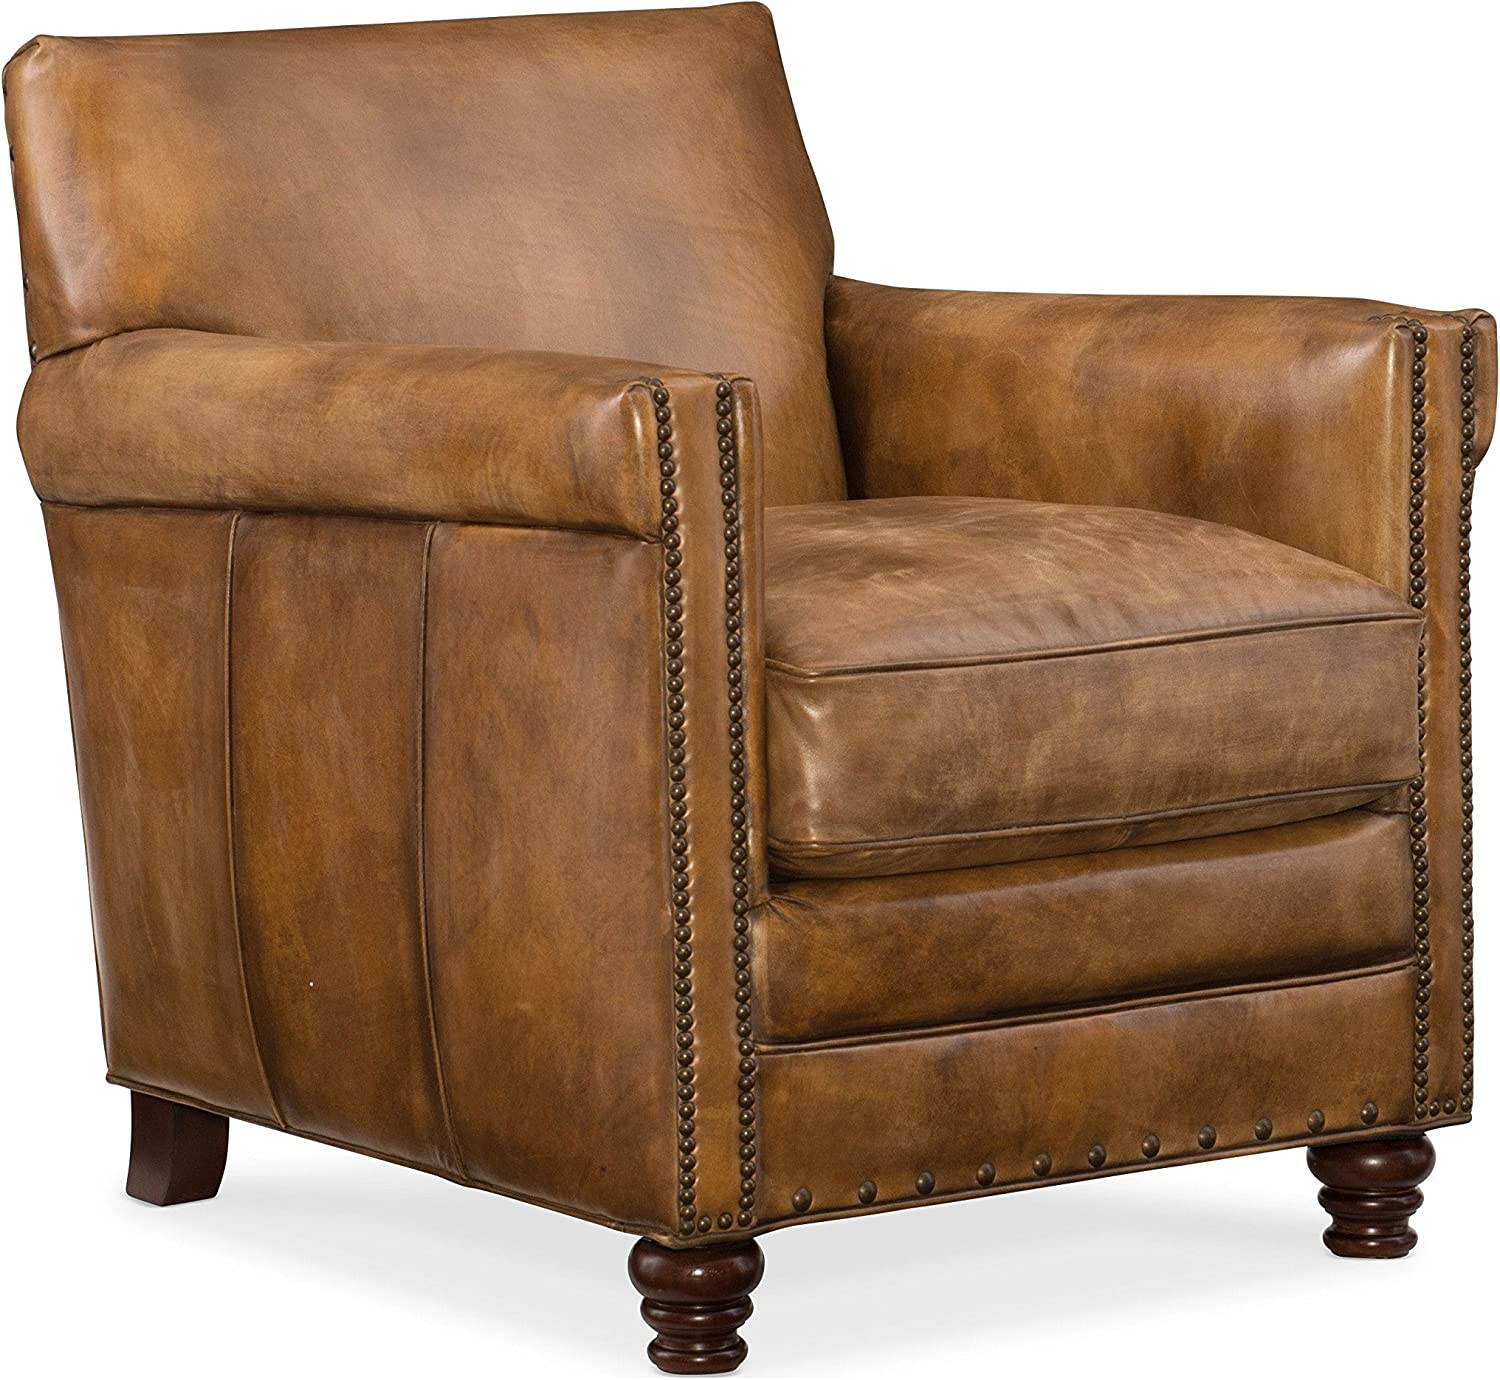 Hooker Furniture Potter Leather Club Chair